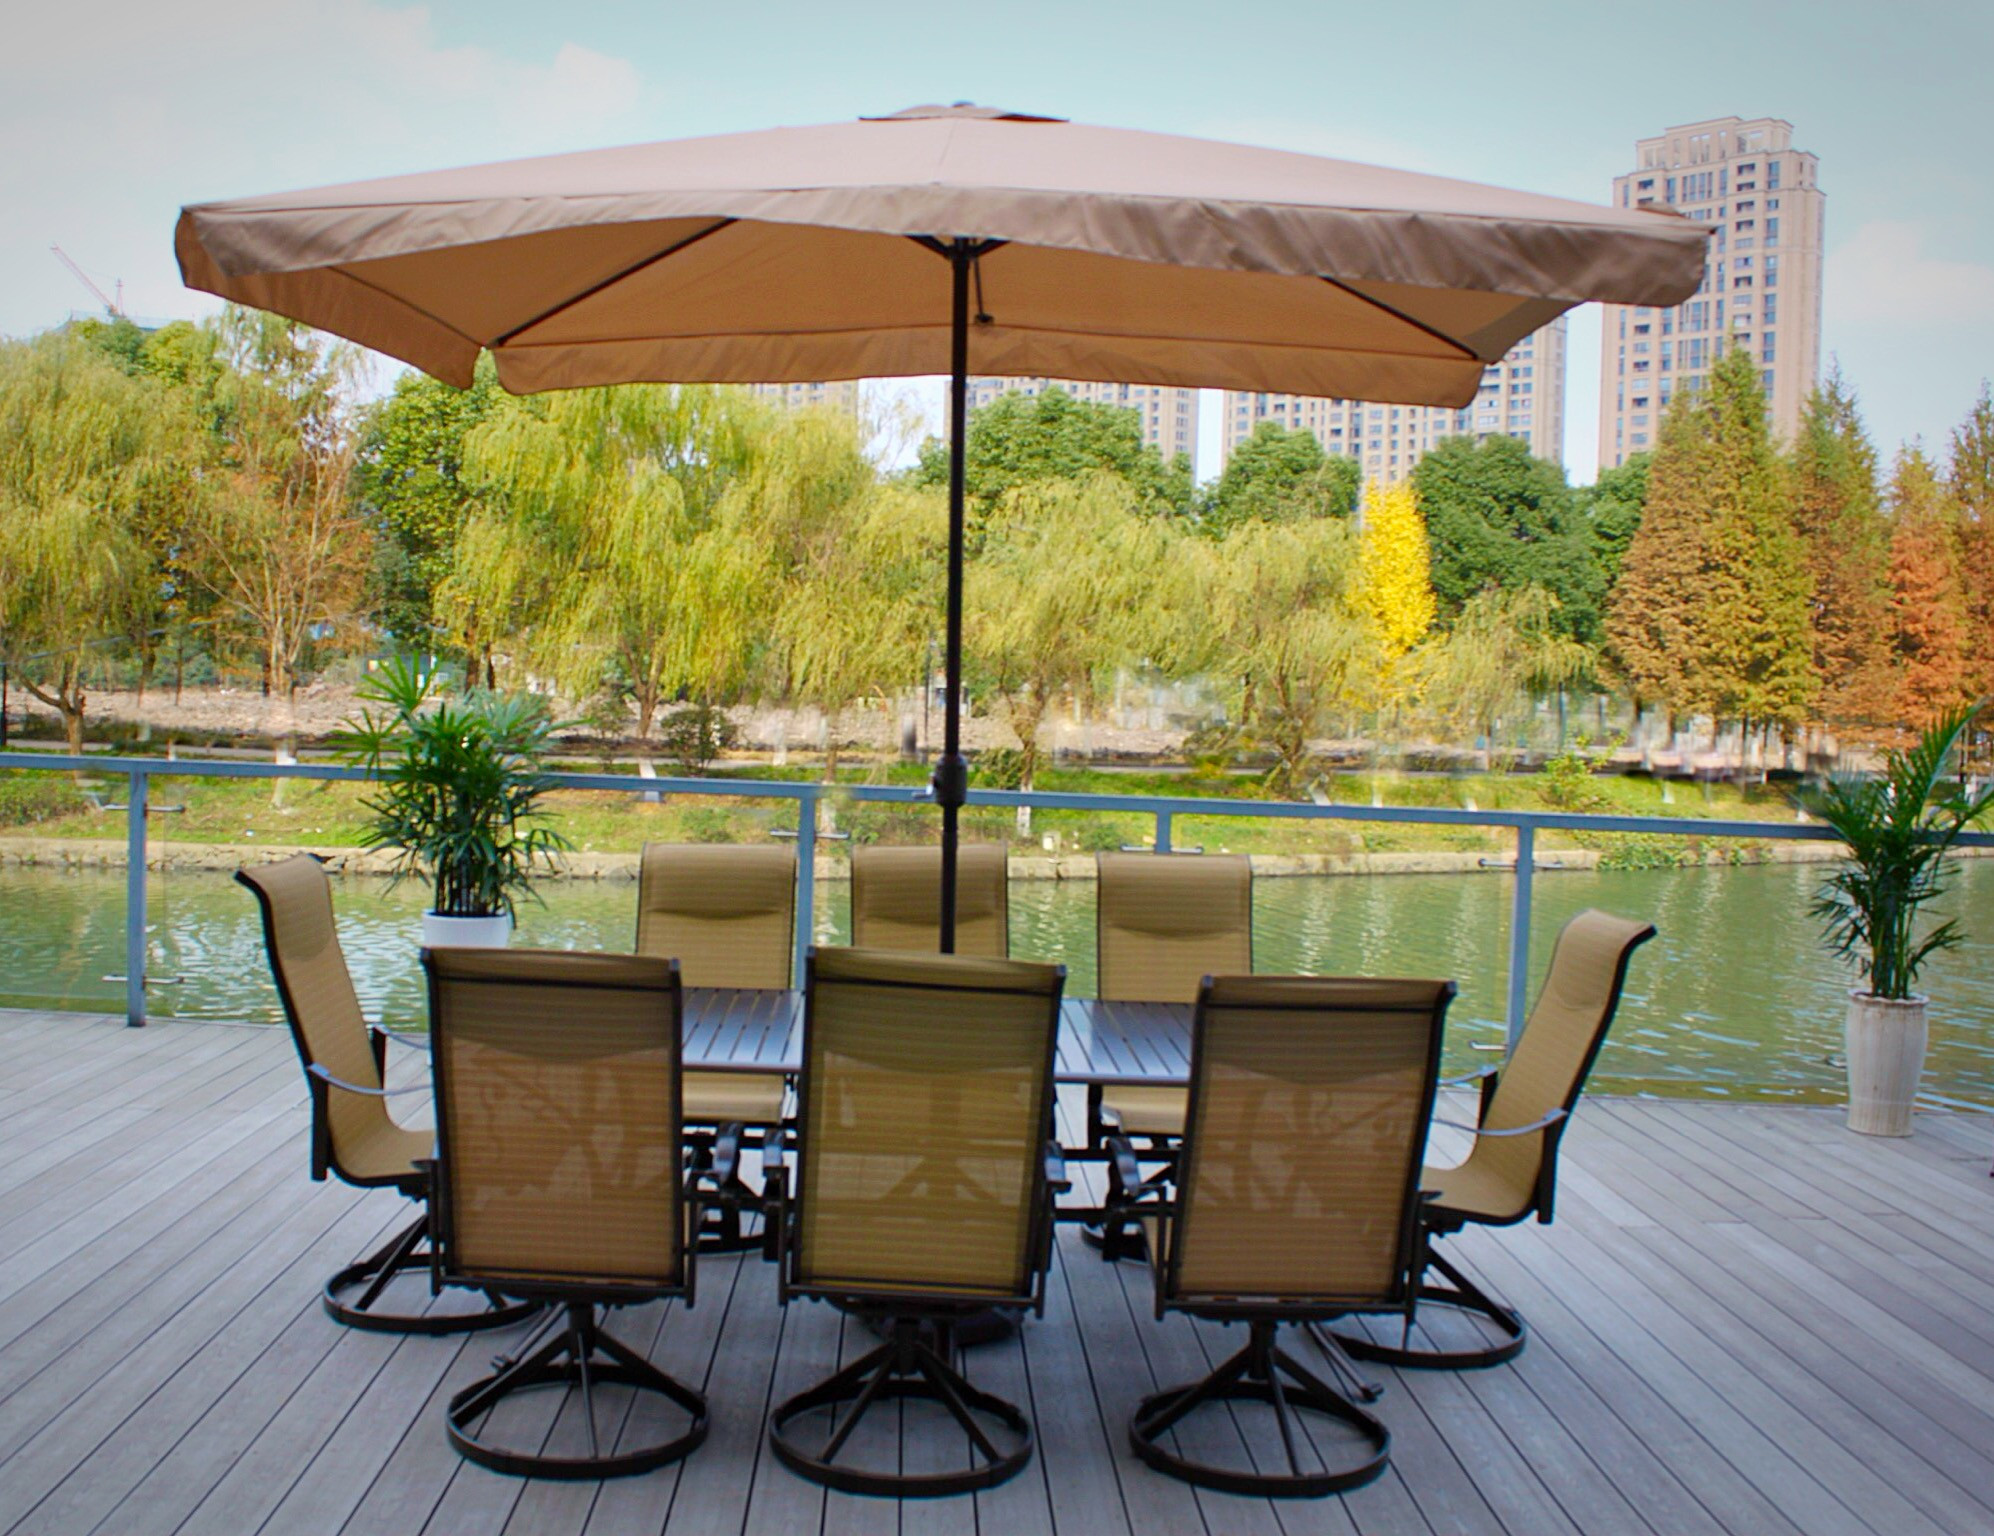 Best ideas about Patio Dining Sets On Sale . Save or Pin Pebble Lane Living Patio Dining Set With Umbrella Sets Now.